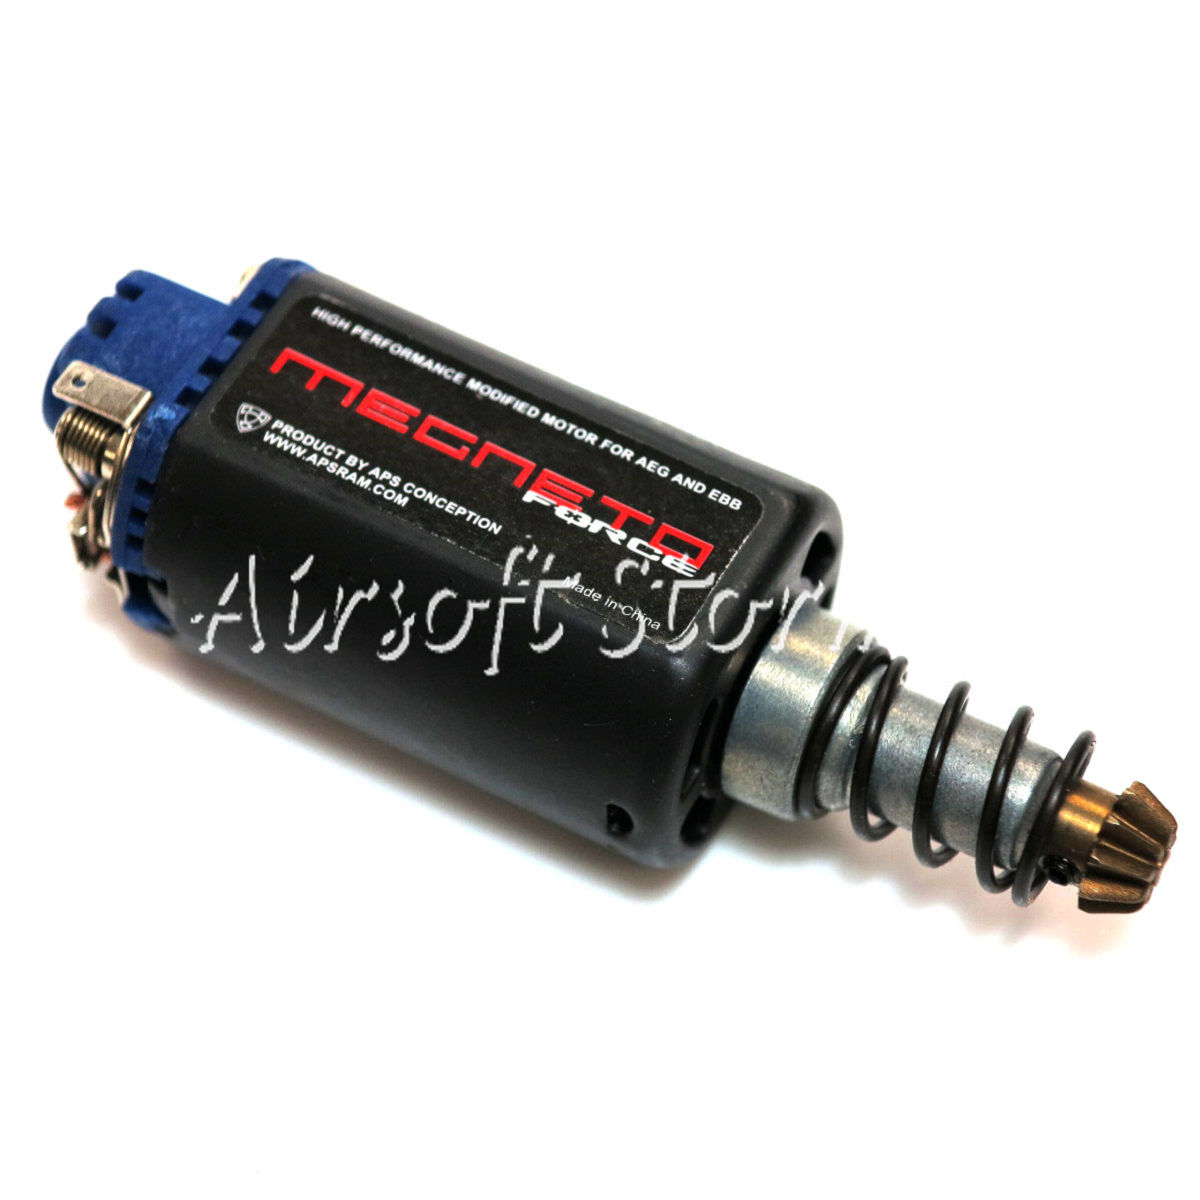 Airsoft Tactical Gear APS AER030 Magneto Force AEG Motor (Long)